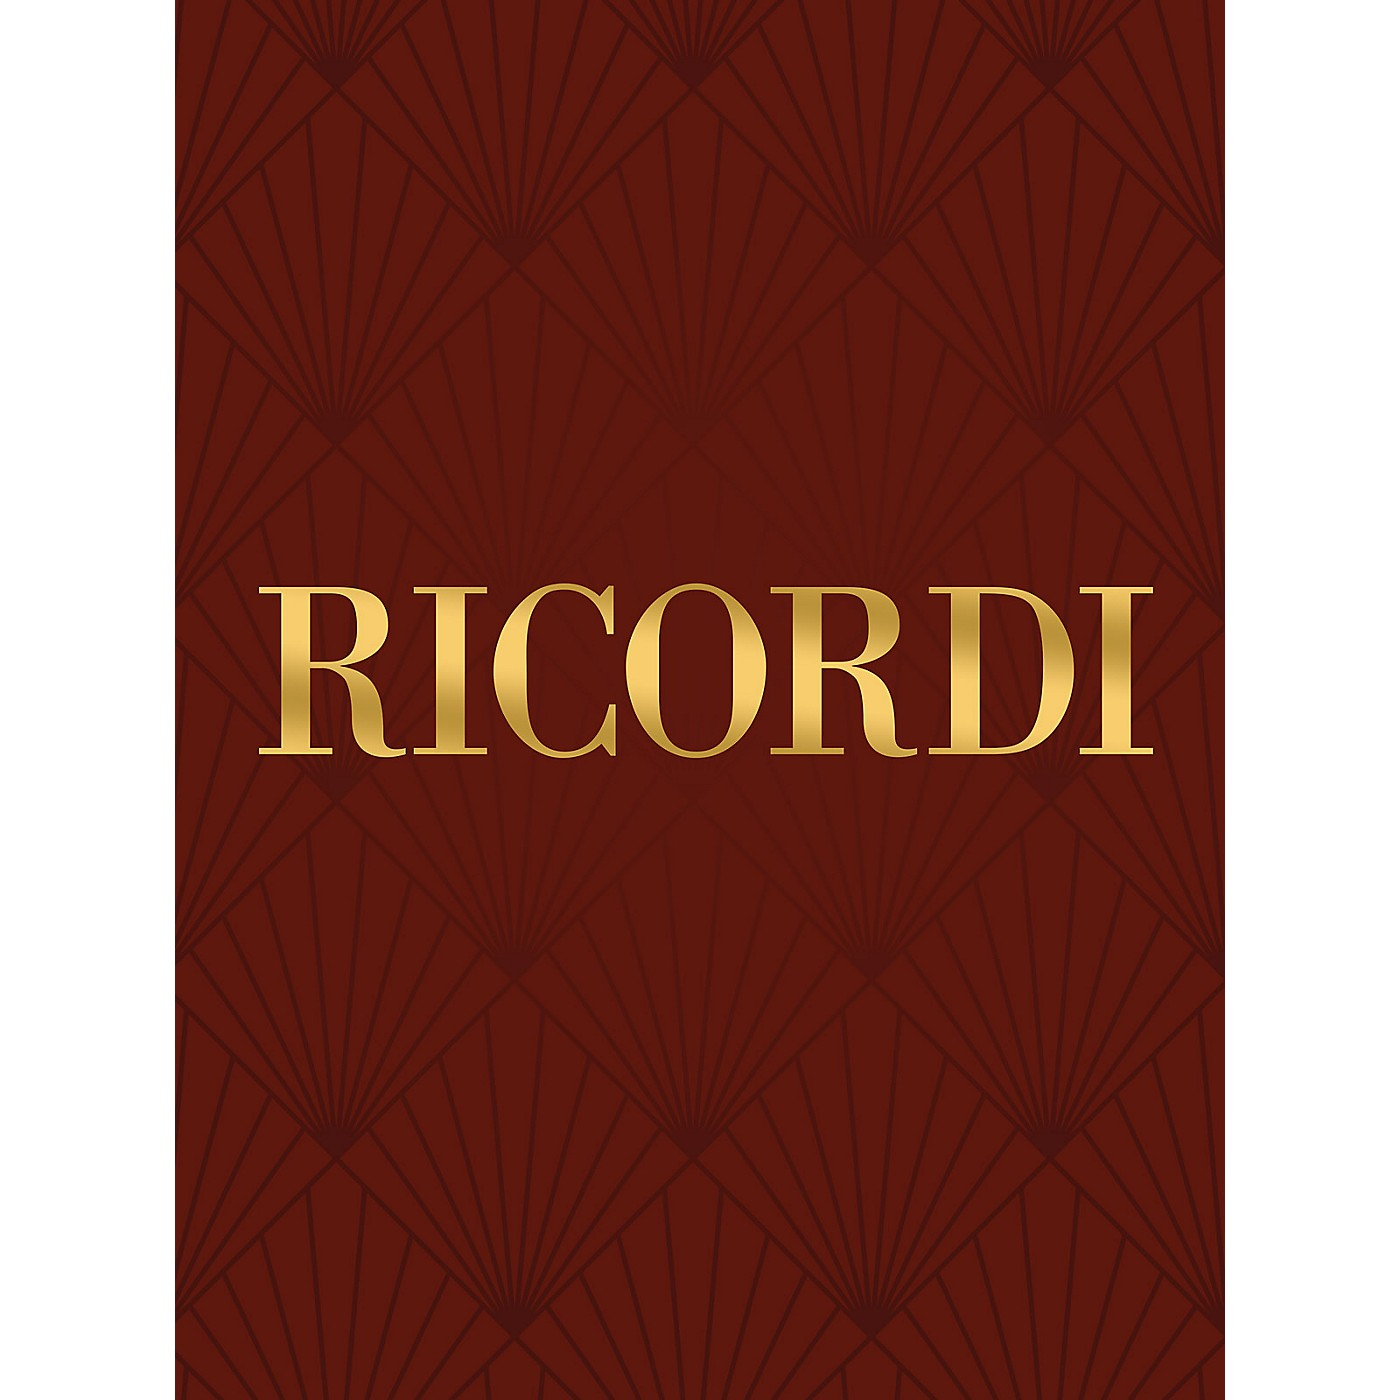 Ricordi 20 Sight Reading Exercises for Piano Piano Method Series Composed by Carl Czerny thumbnail